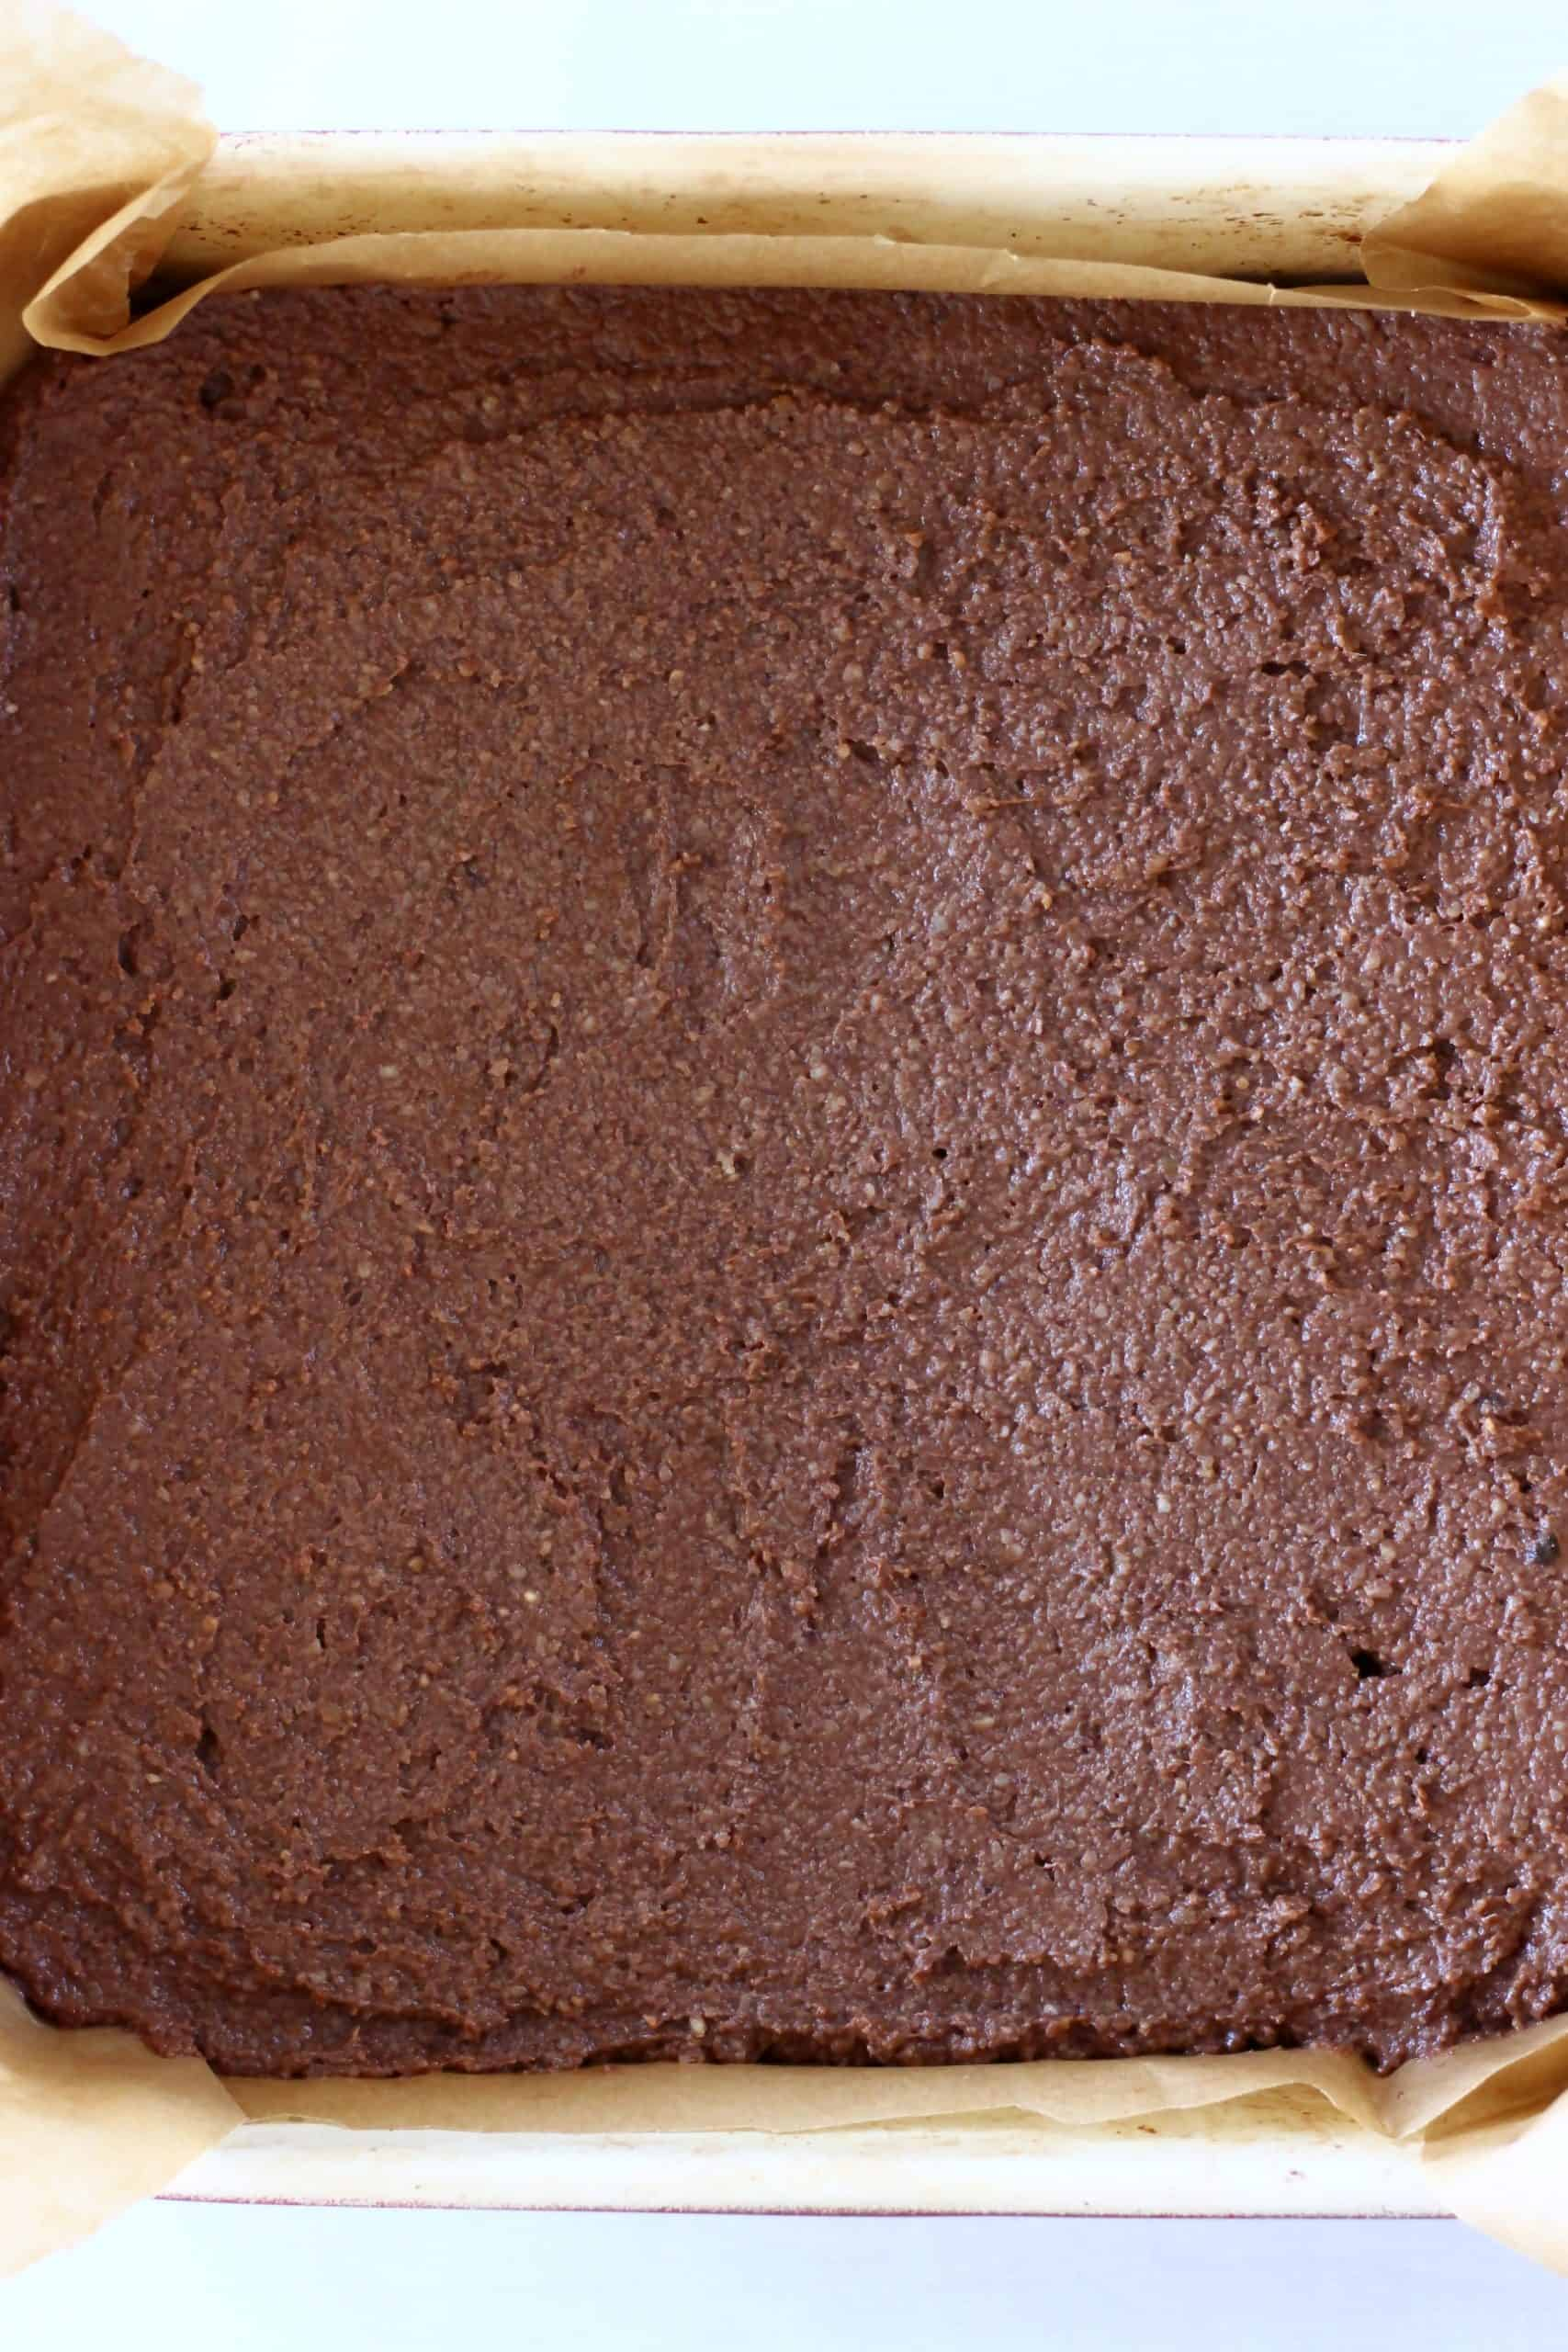 Raw vegan peppermint brownie batter in a square baking tin lined with baking paper